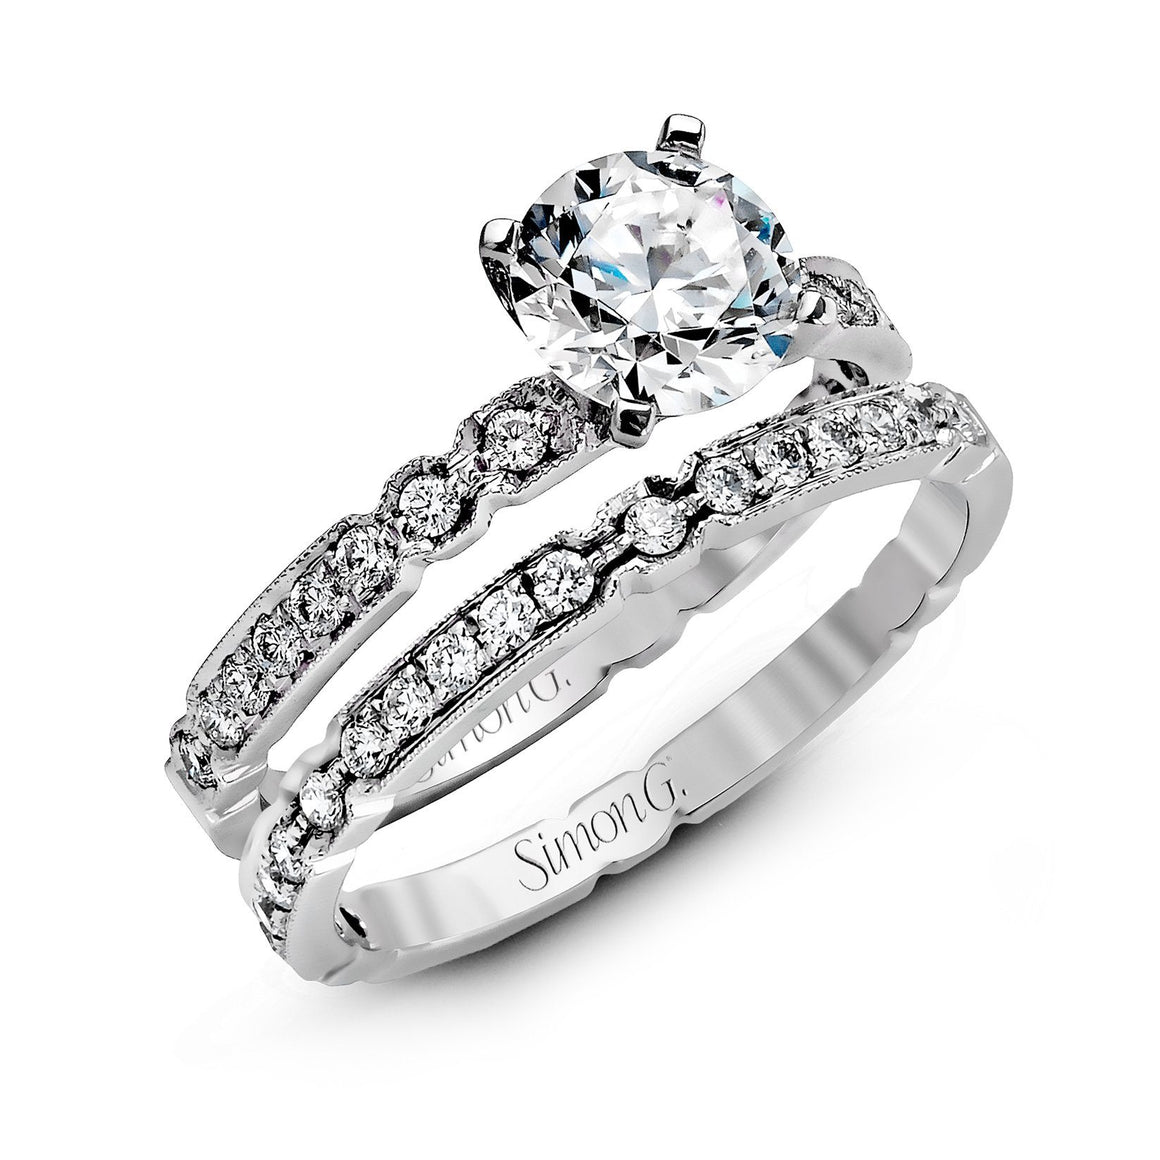 Simon G - NR130, Engagement Ring Set, Simon G - Birmingham Jewelry